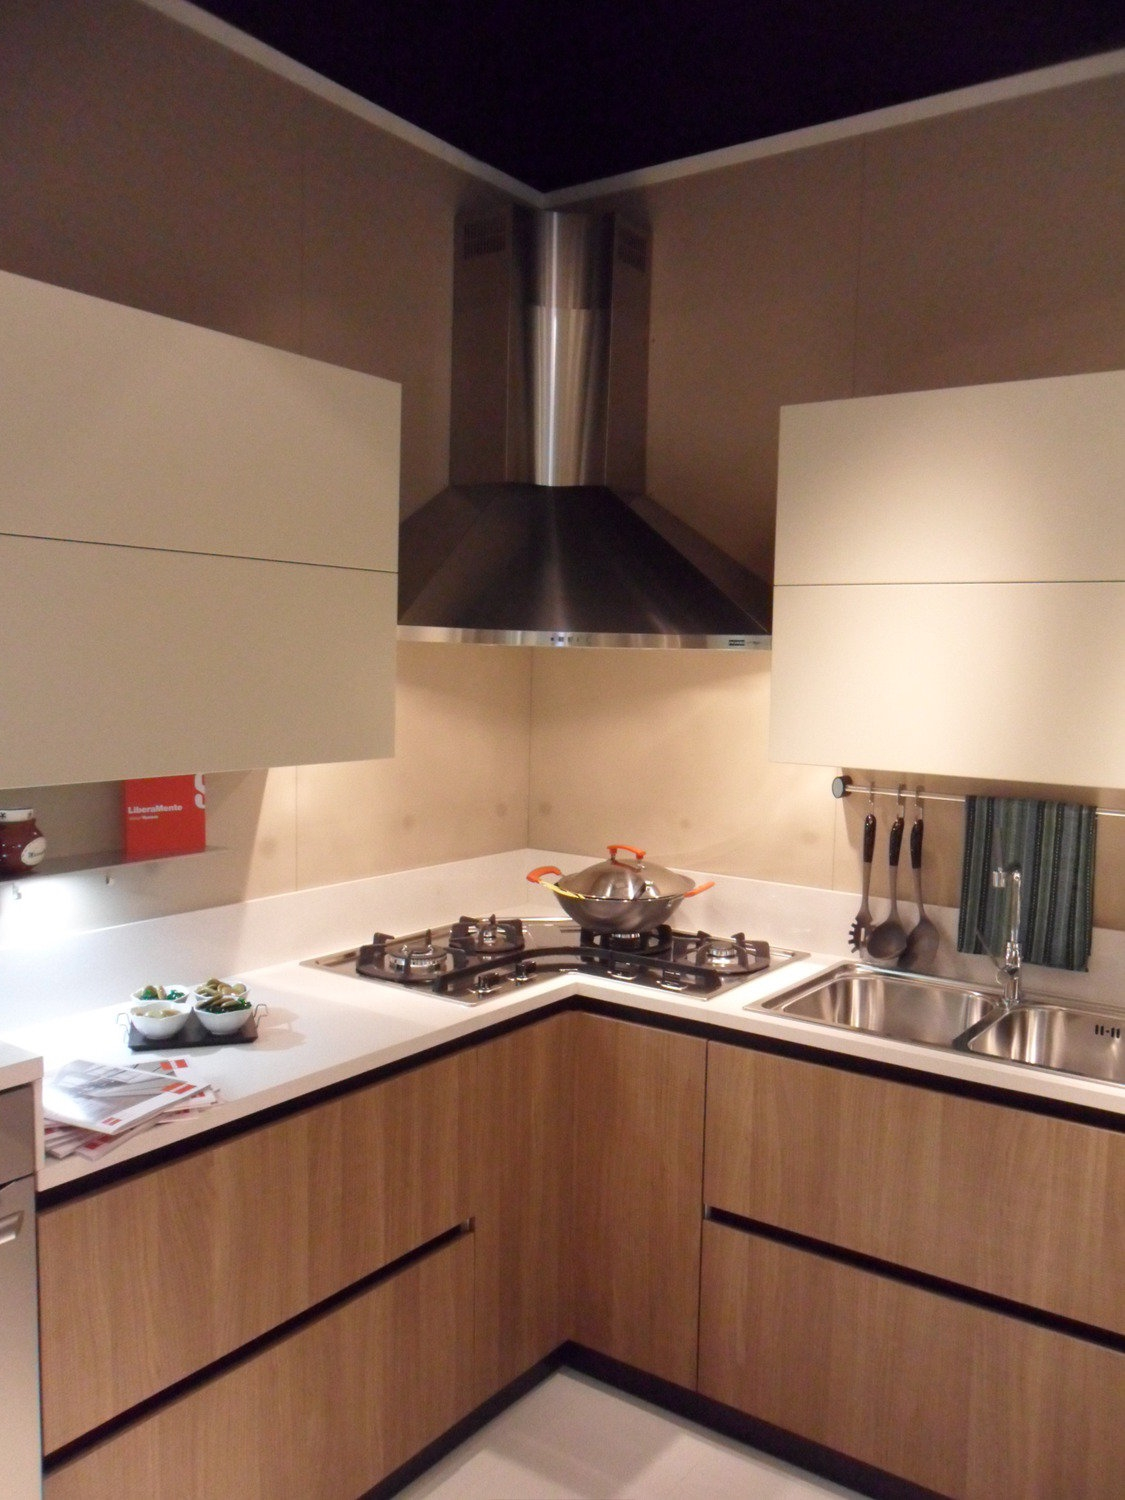 Beautiful Preventivo Cucina Scavolini Gallery - bery.us - bery.us